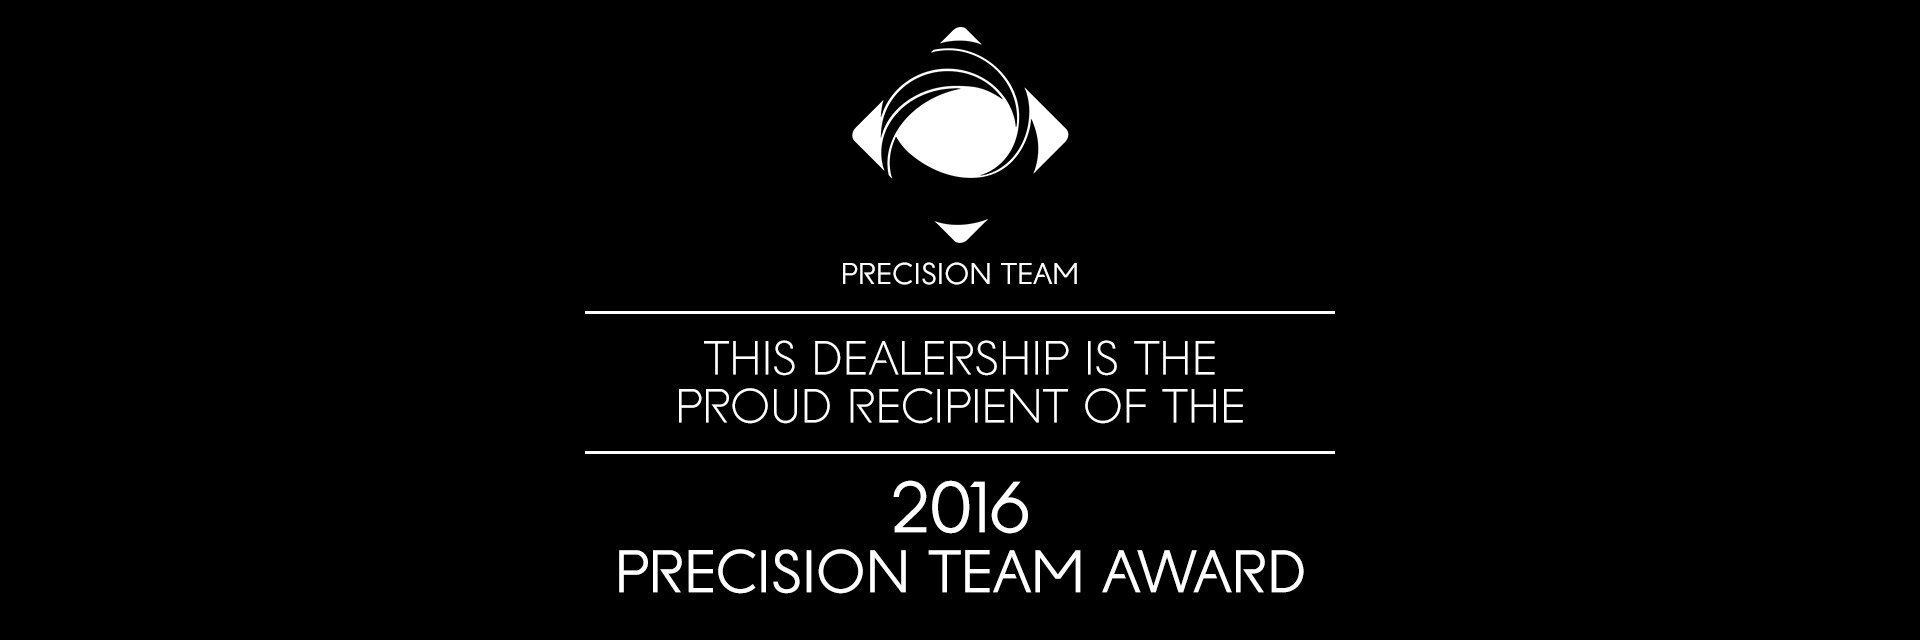 2016 Precision Team Award